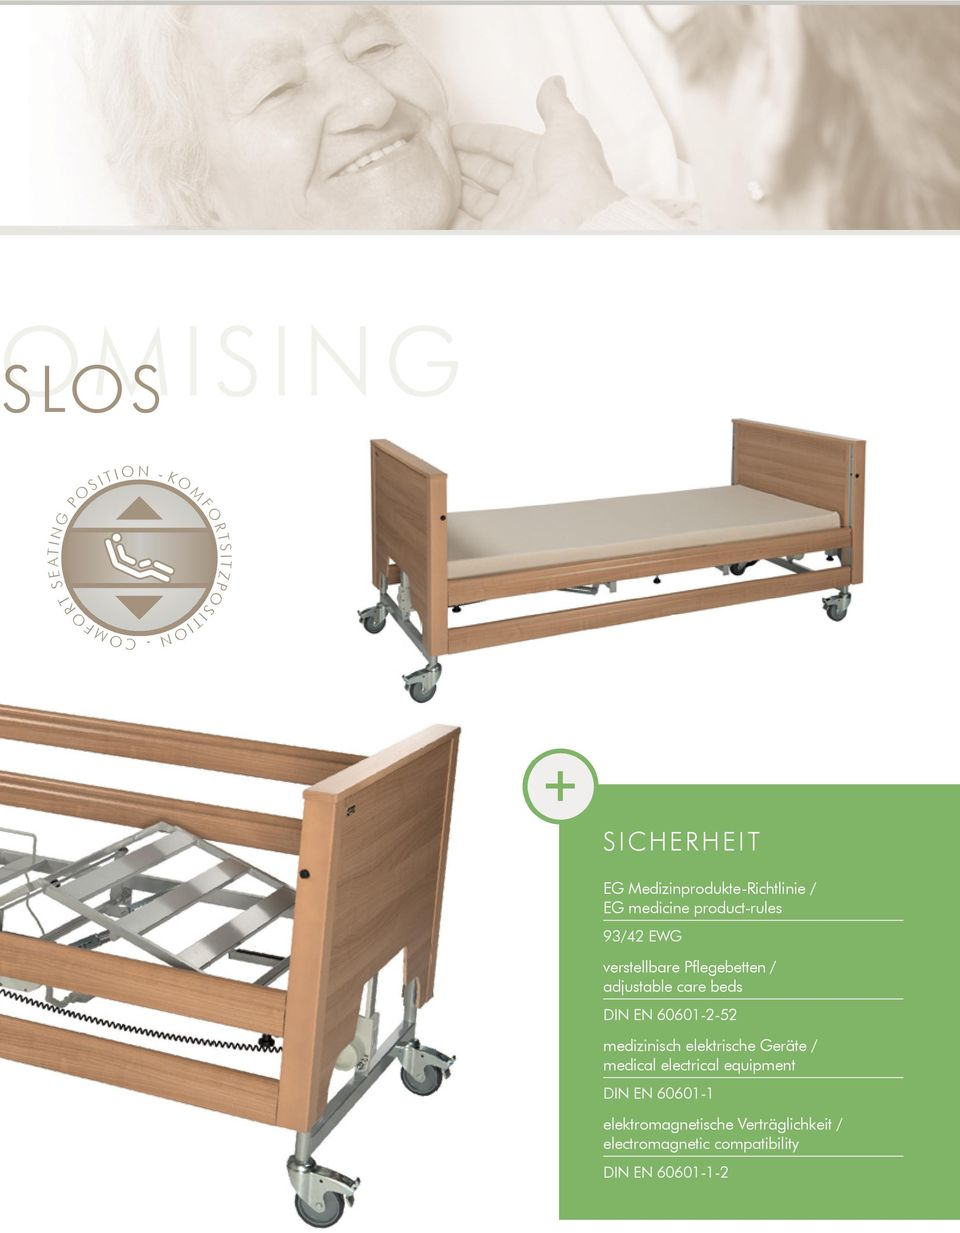 adjustable care beds DIN EN 60601252 medizinisch elektrische Geräte / medical electrical